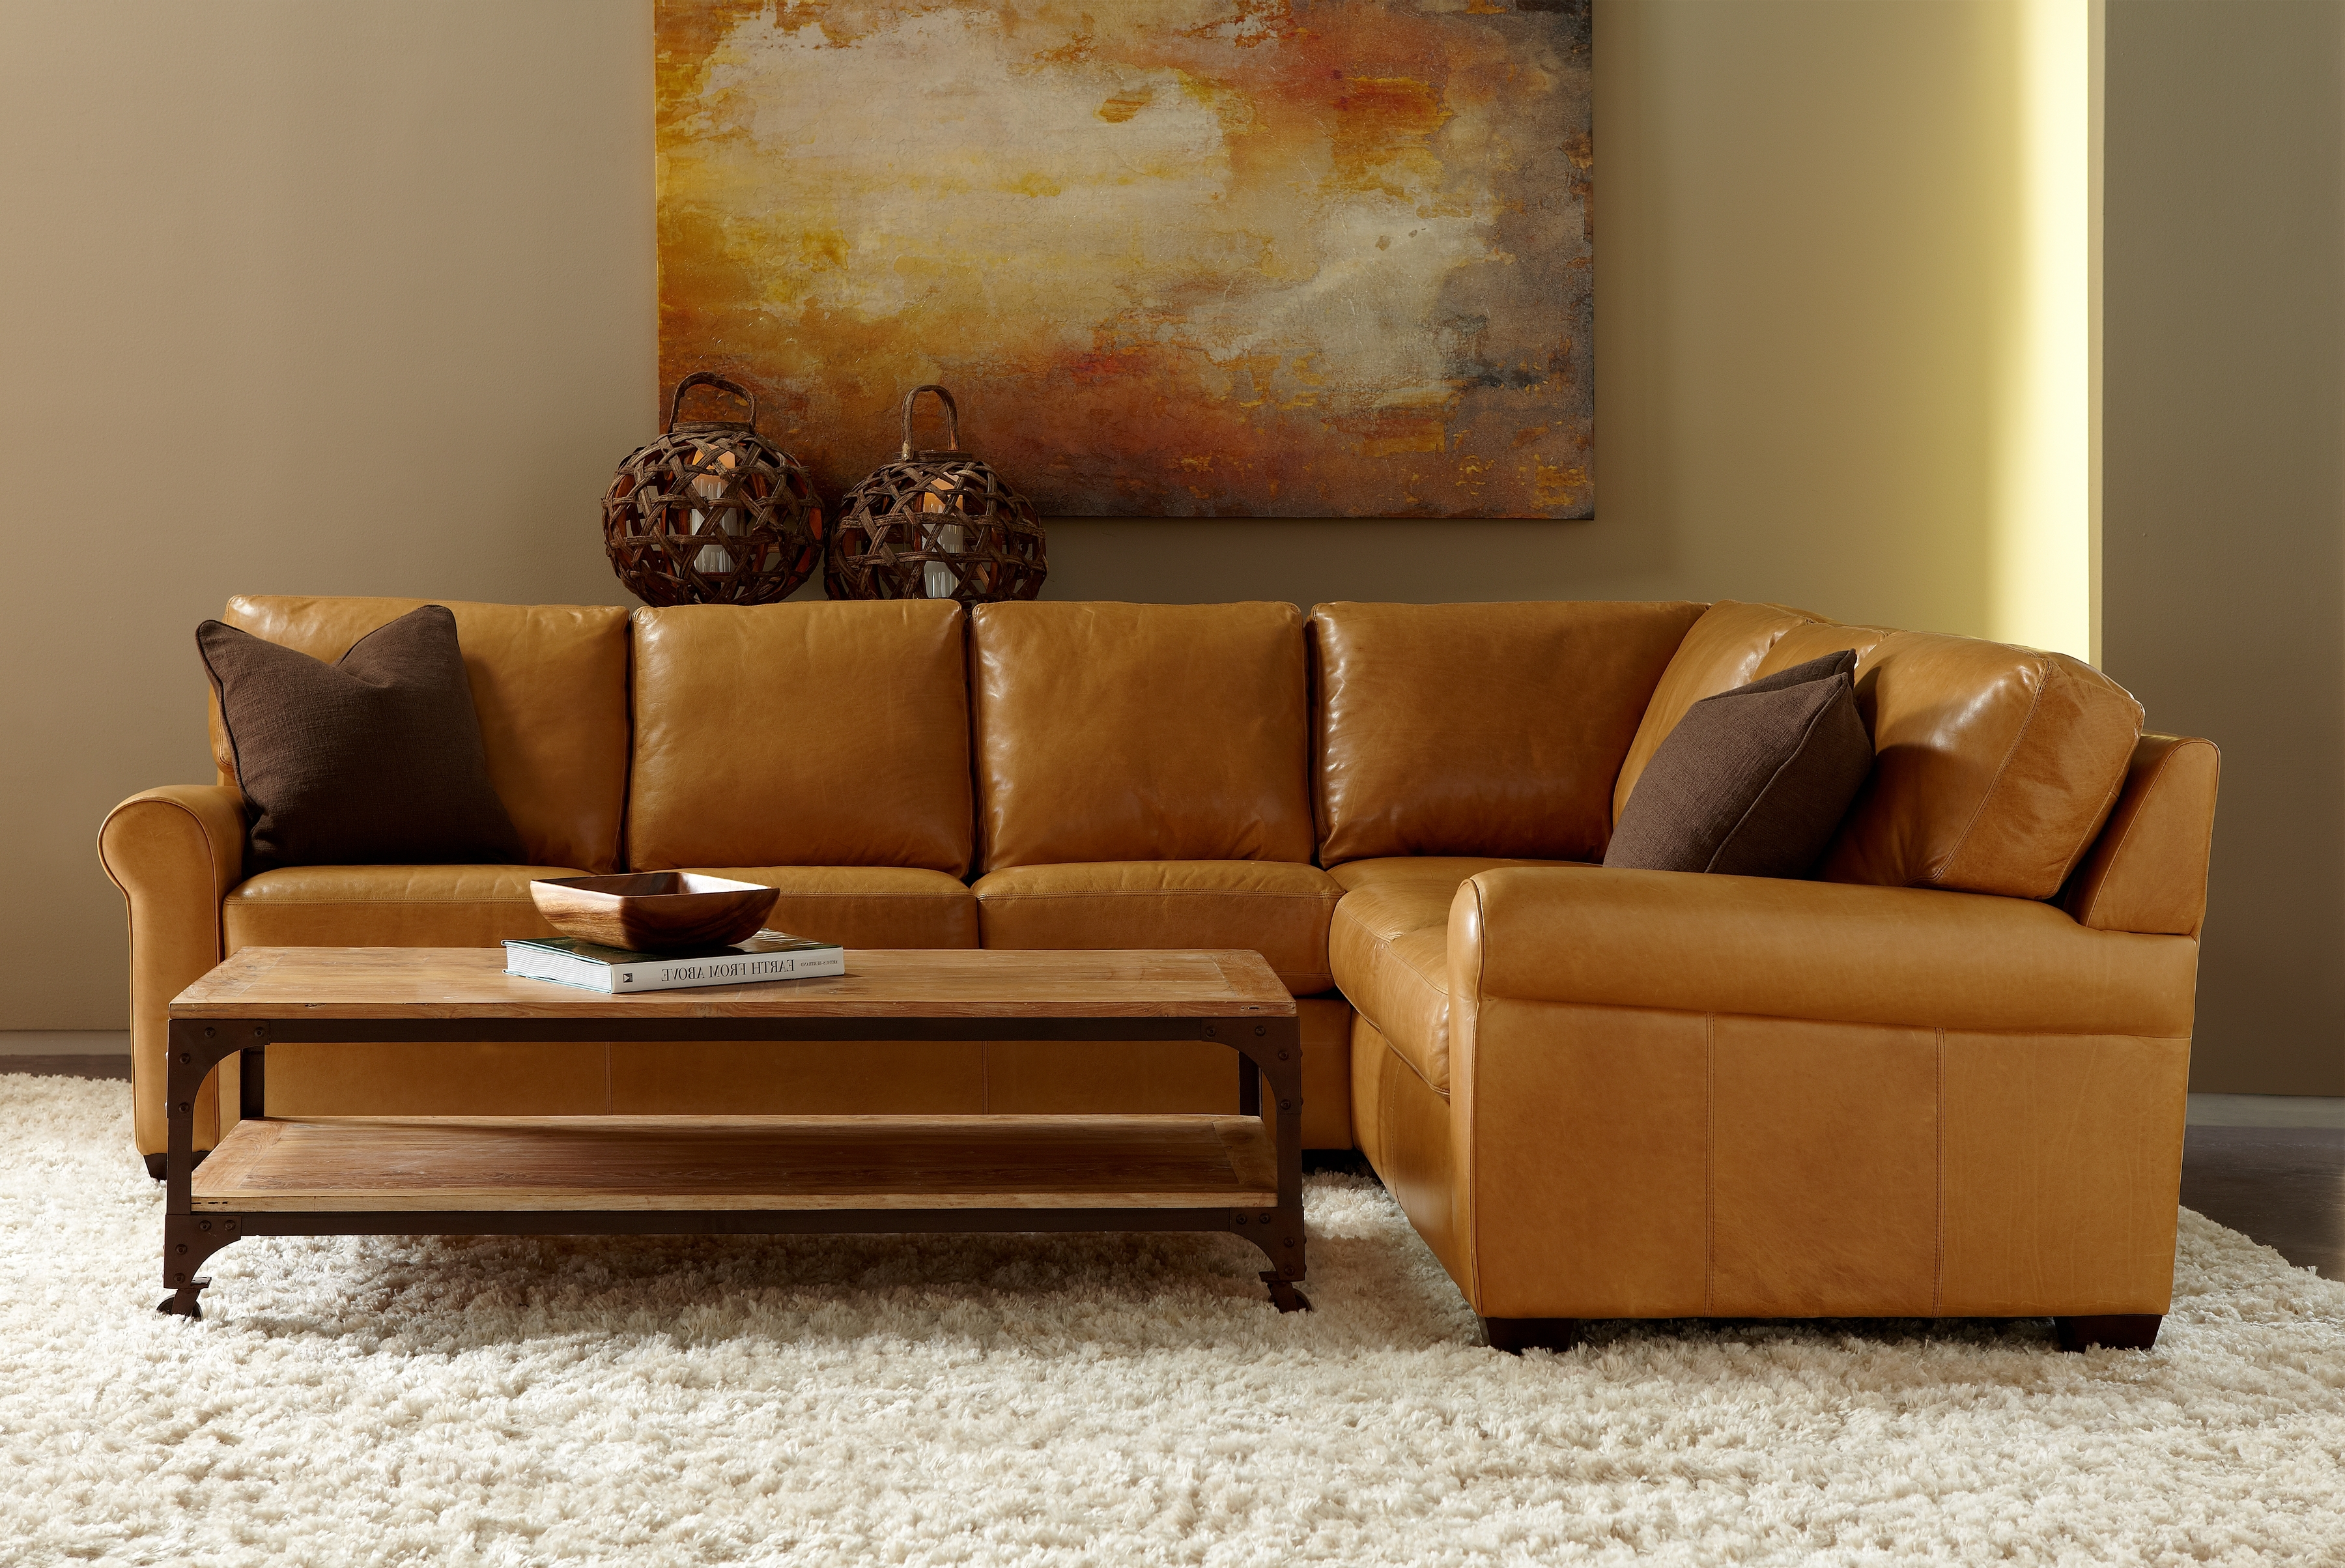 Made In Usa Sectional Sofas Throughout 2019 Sectional Sofas – Elegance And Style Tailored Just For Youand (View 2 of 20)